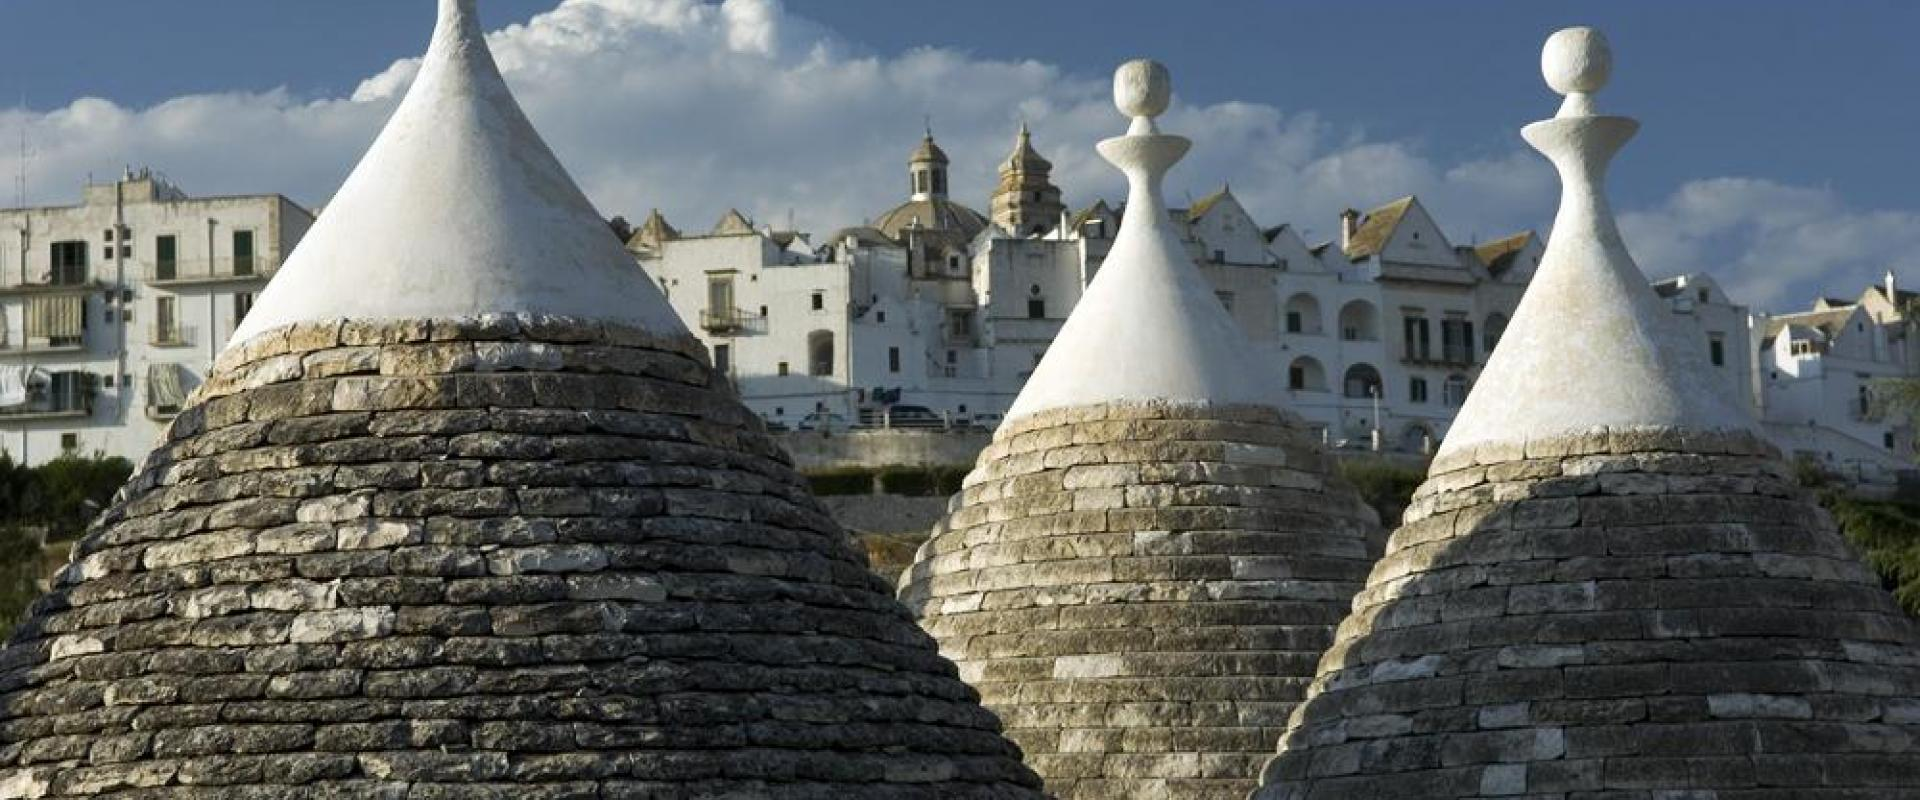 Tour Campania - Apulia  A sensational journey among enchanting towns